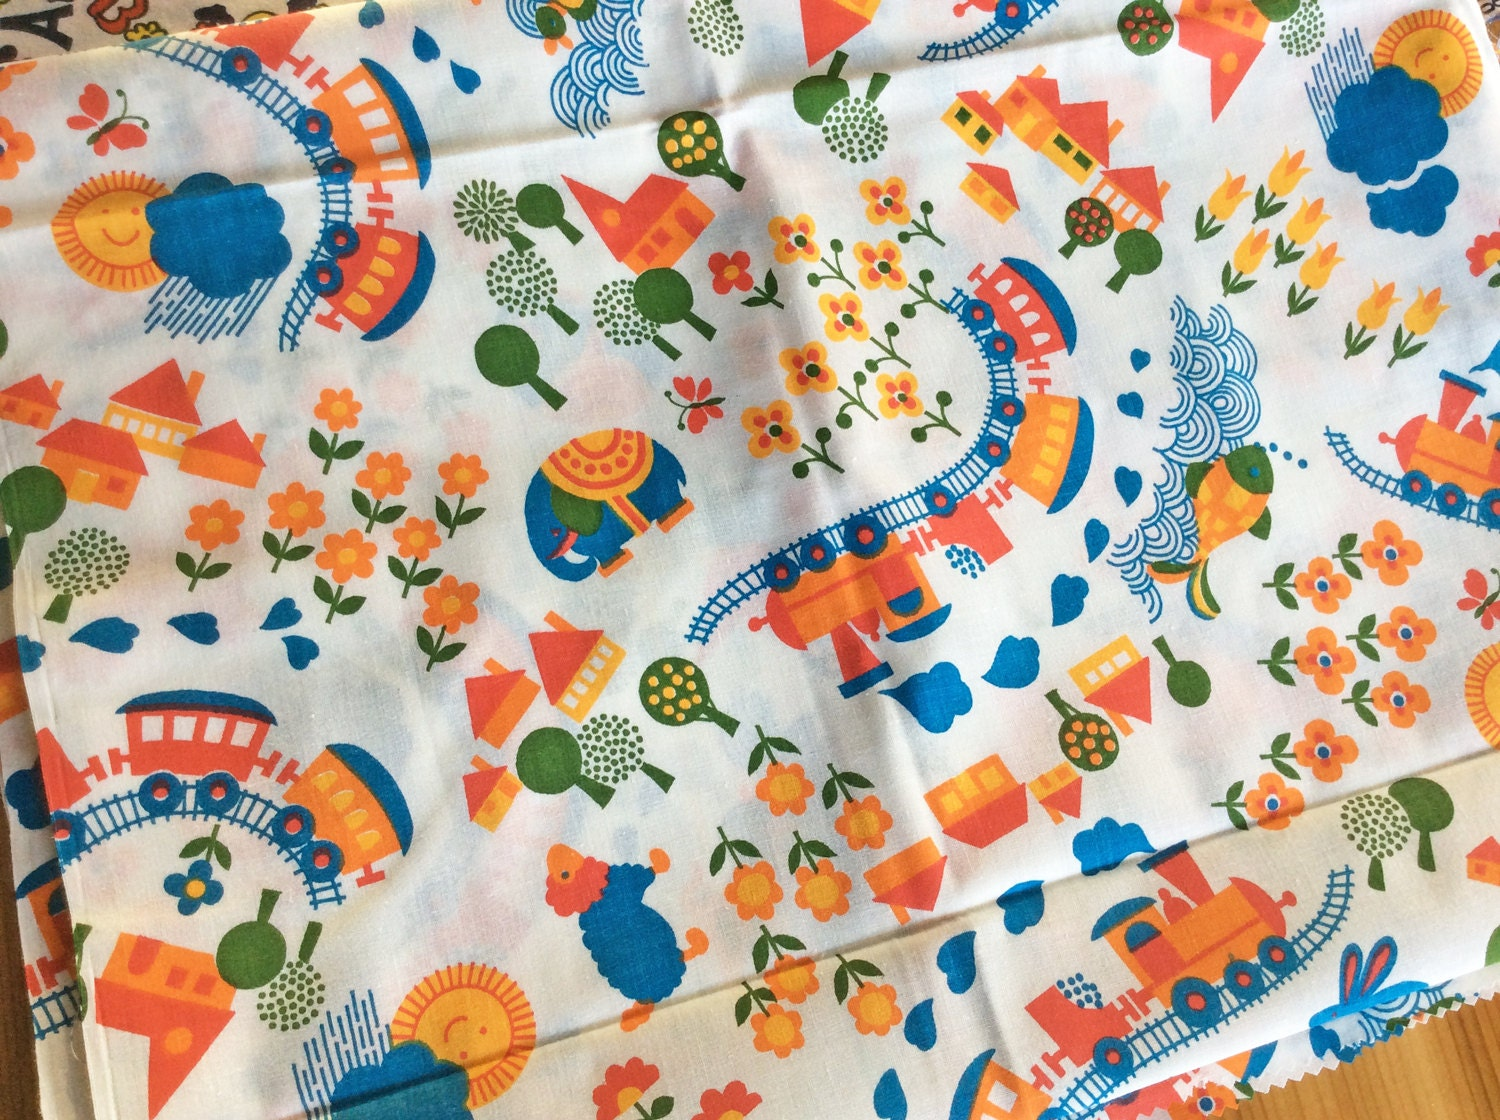 Vintage fabric cute kitschy childrens print novelty for Childrens patterned fabric